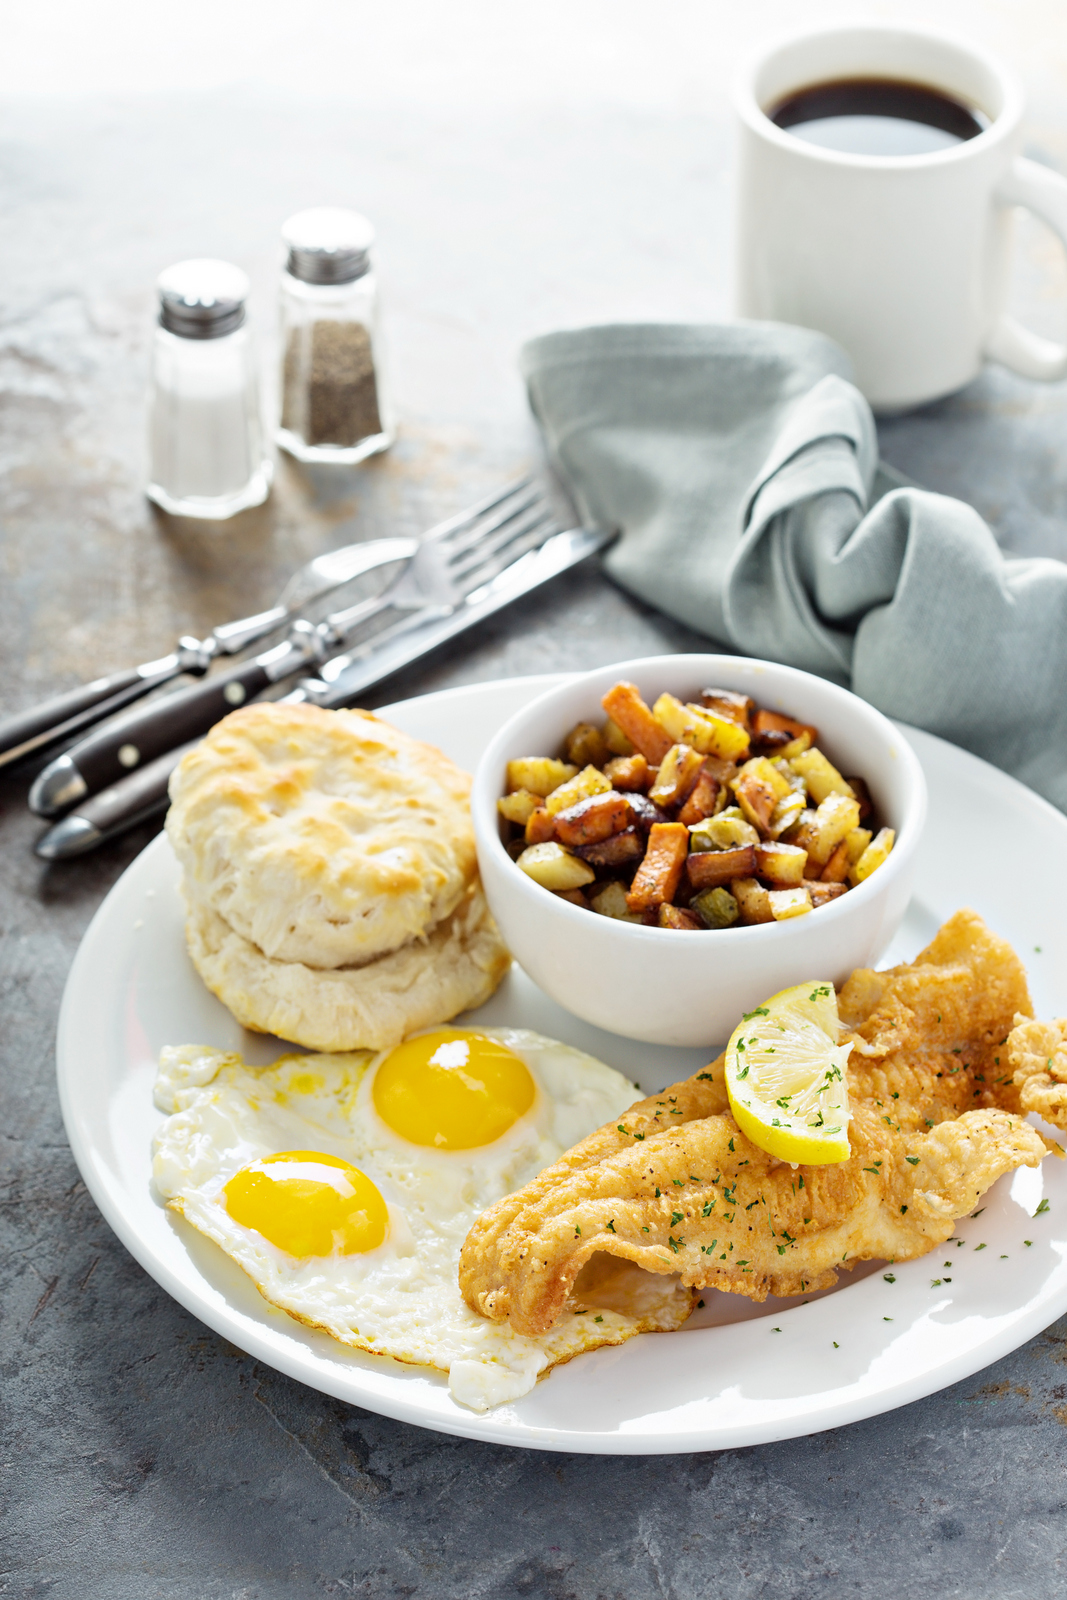 Nana's Chicken & Waffles Breakfast.jpg